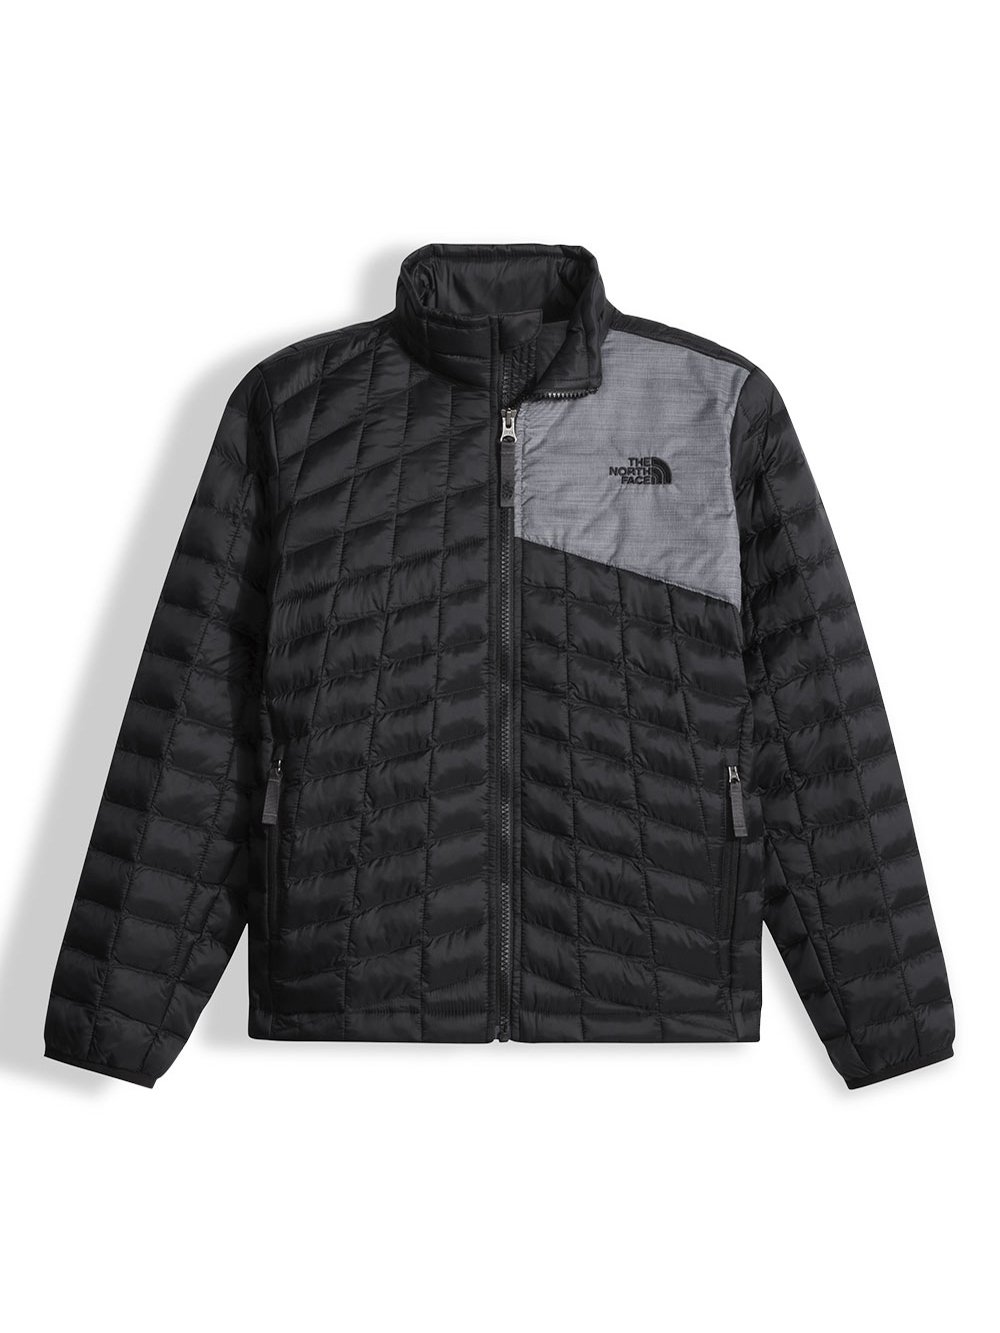 The North Face Little Boys' Thermoball Full Zip Jacket (Sizes XXS - XS) - black, xs/6